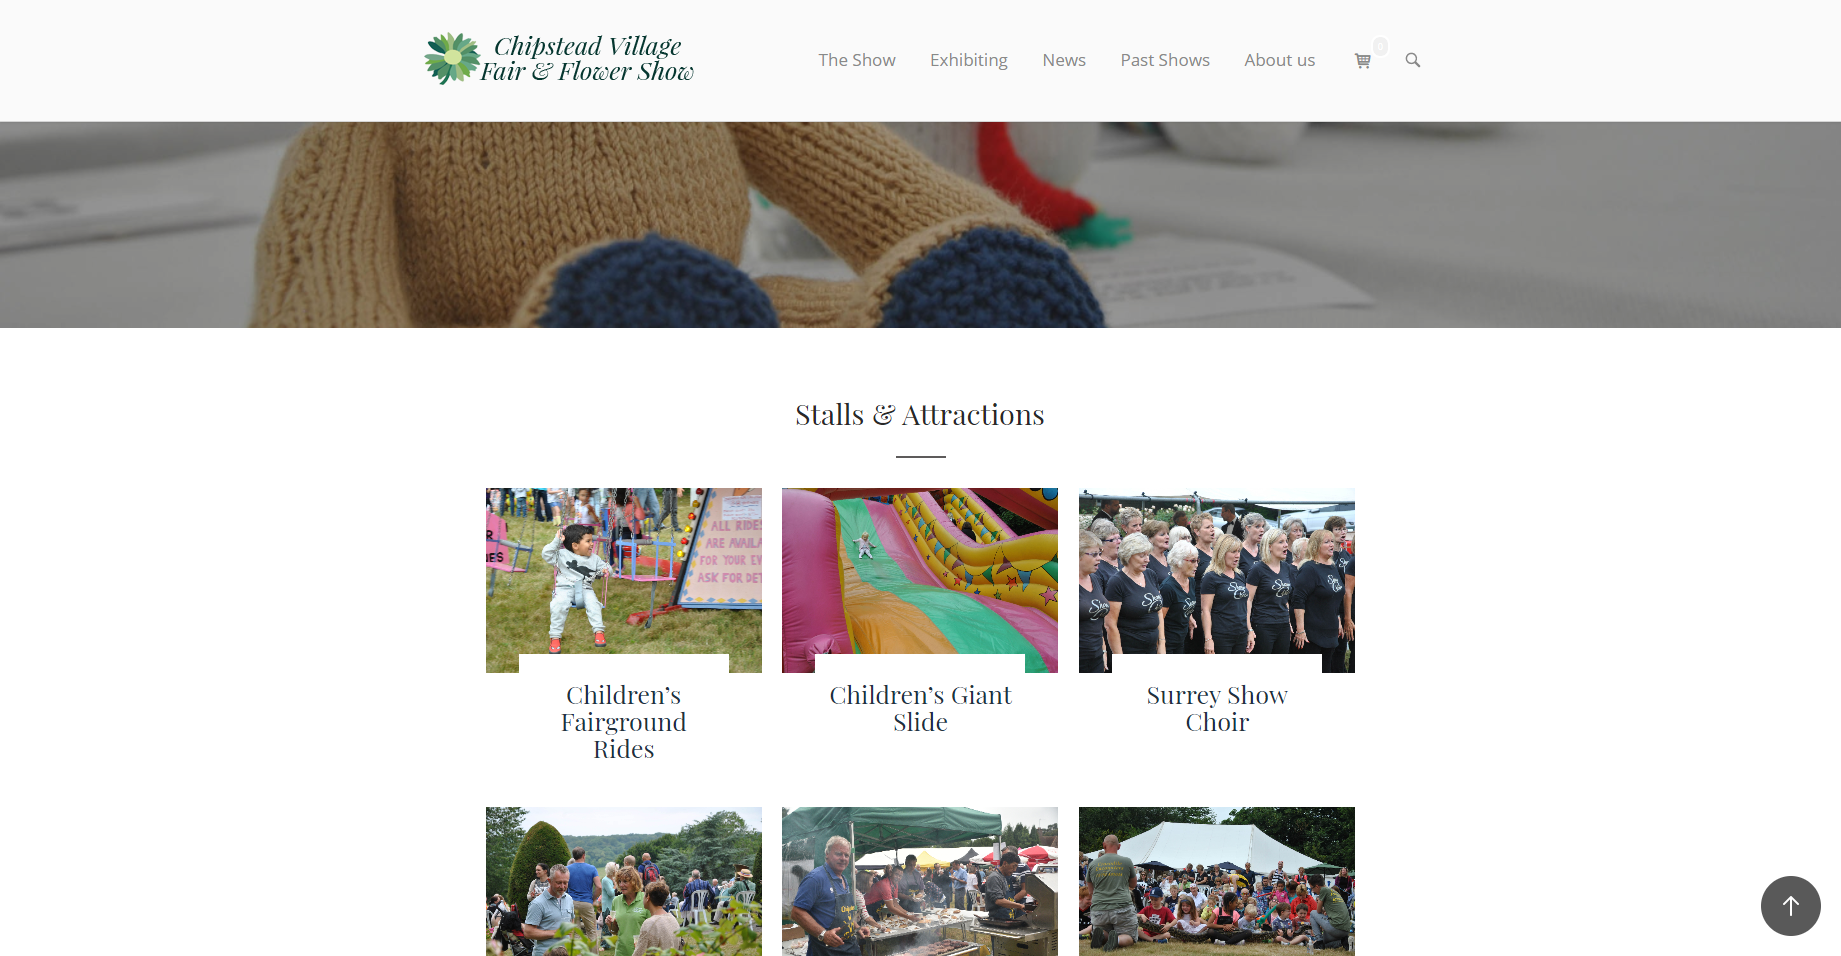 The Chipstead Village Fair & Flower Show website front page.